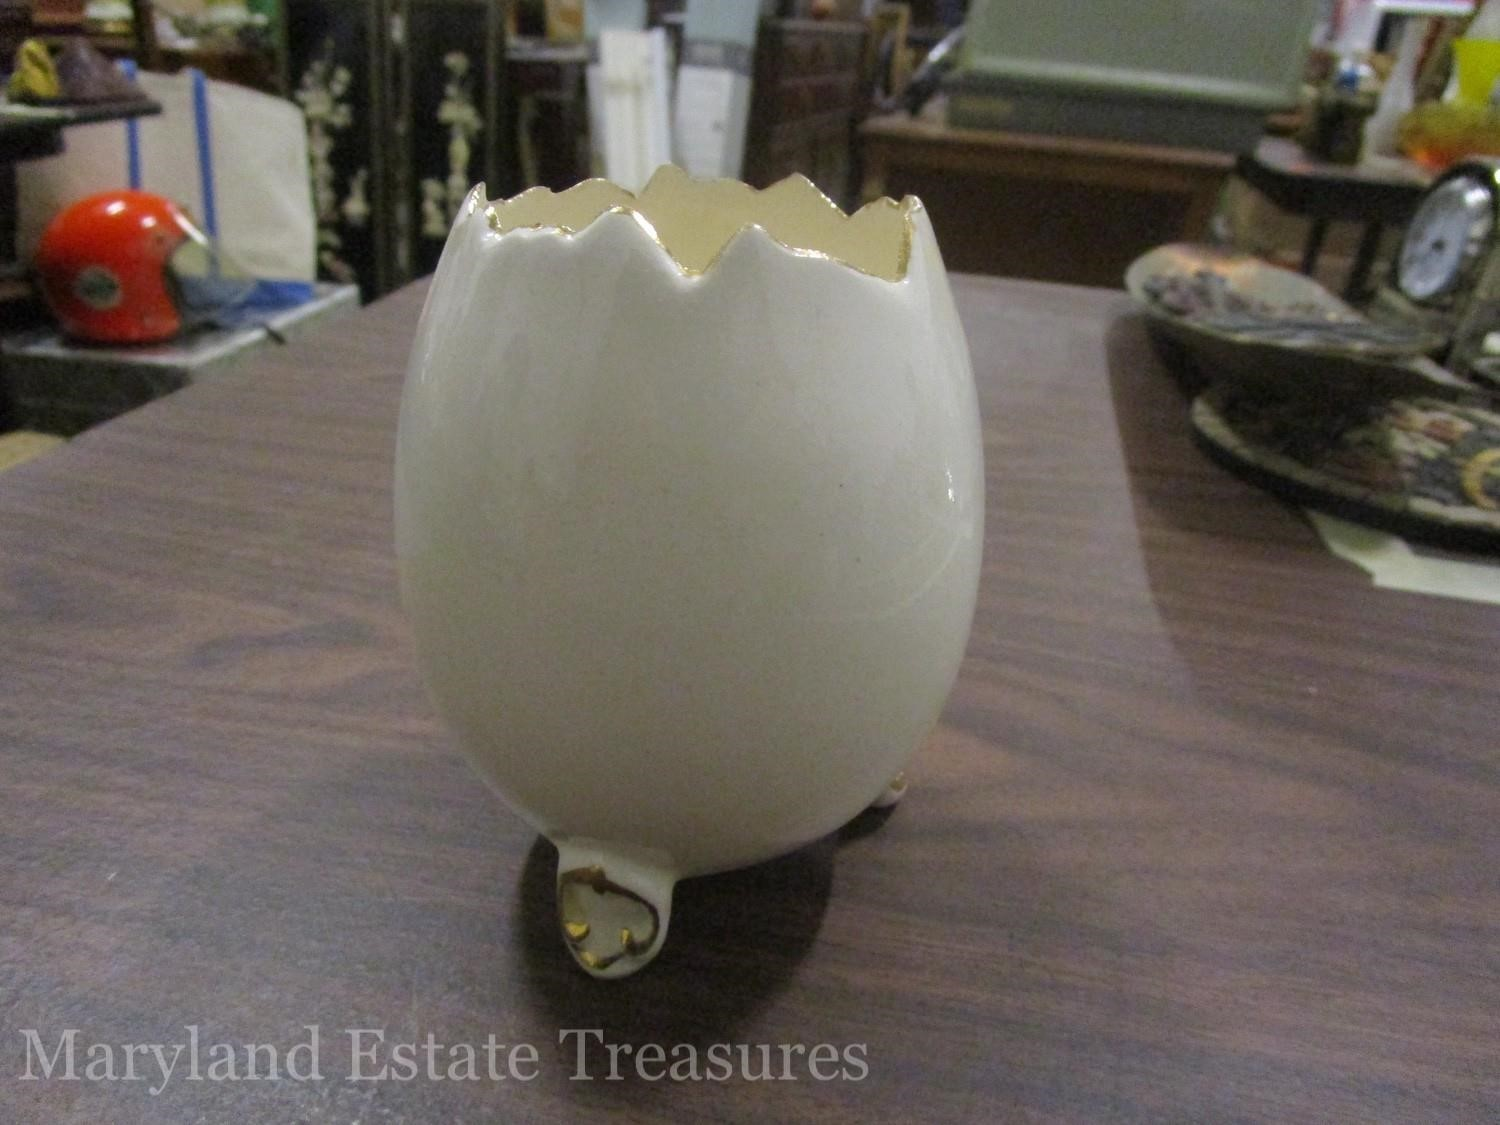 Maryland Estate Treasures HAPPY NEW YEAR AUCTION!